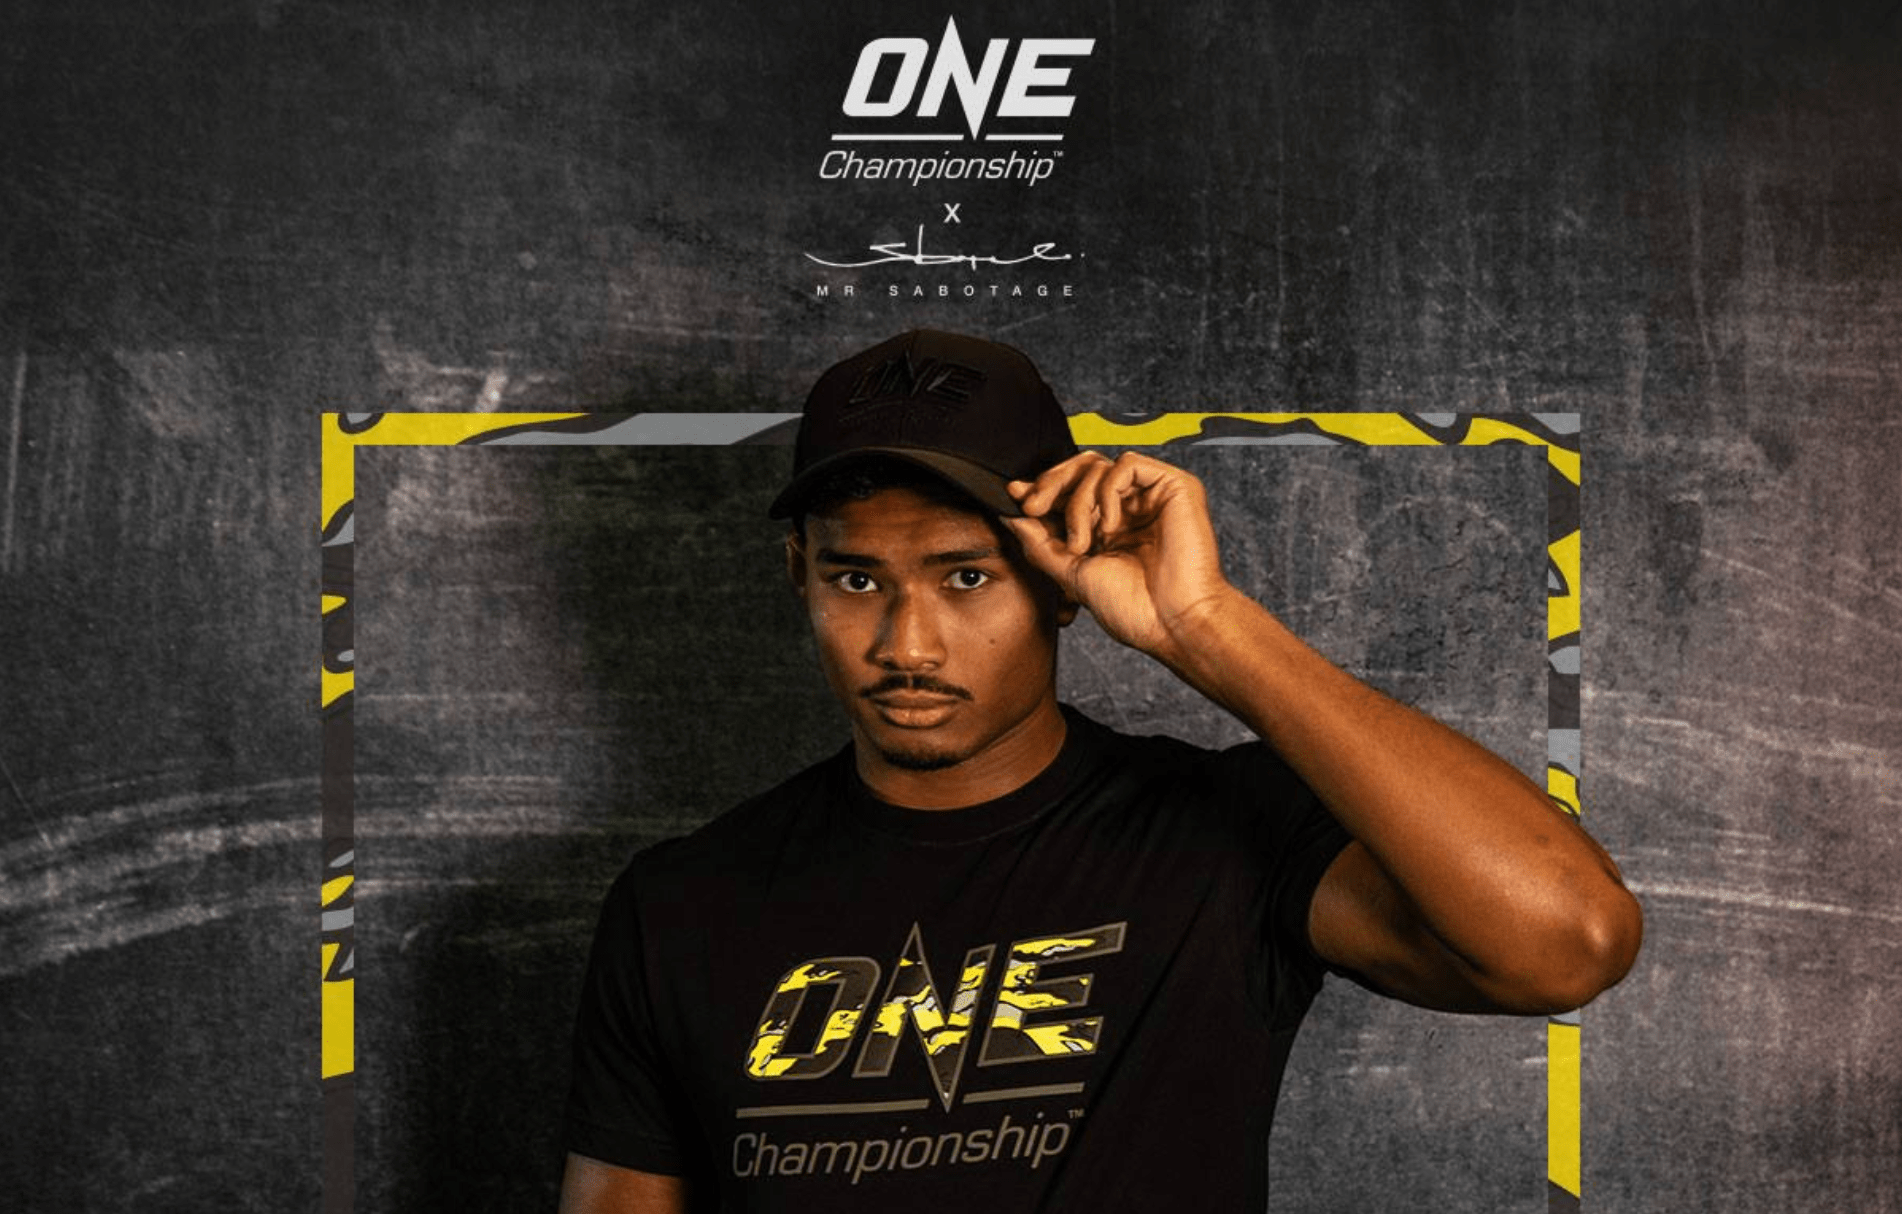 ONE Championship Collaborates With Streetwear Designer SBTG